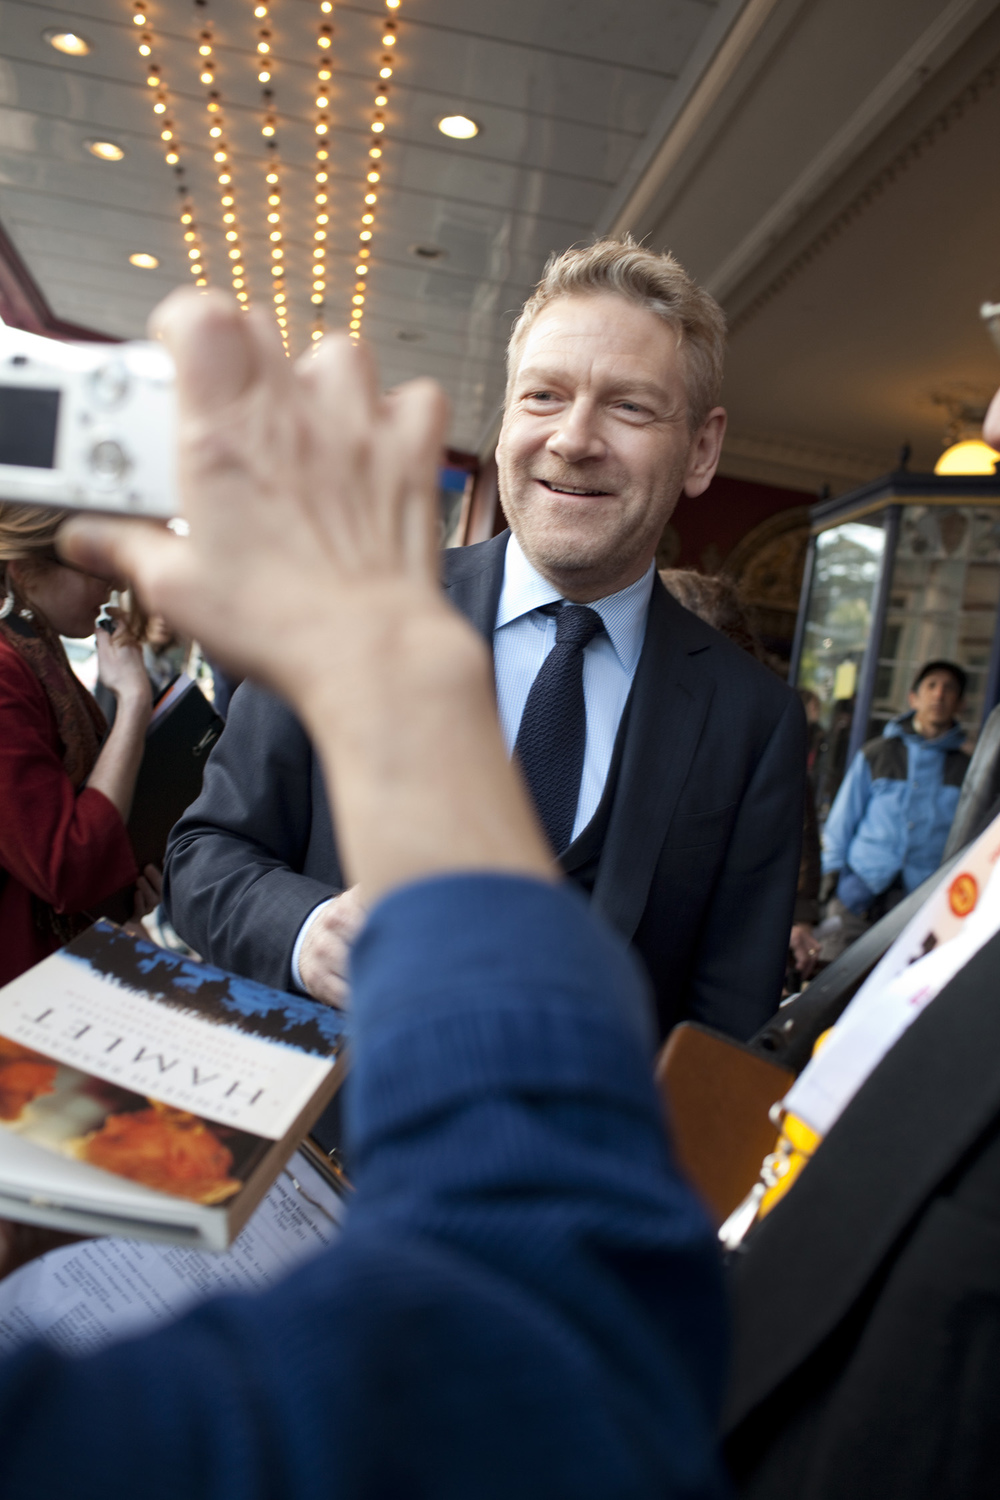 4/26: Award Winners and Cows photo by Pamela Gentile What did Award recipient Kenneth Branagh do during the day before the Film Society's Awards Night Gala? He went to see the Swedish documentary Women with Cows.  And he liked it. And he talked about it on the radio the next day.